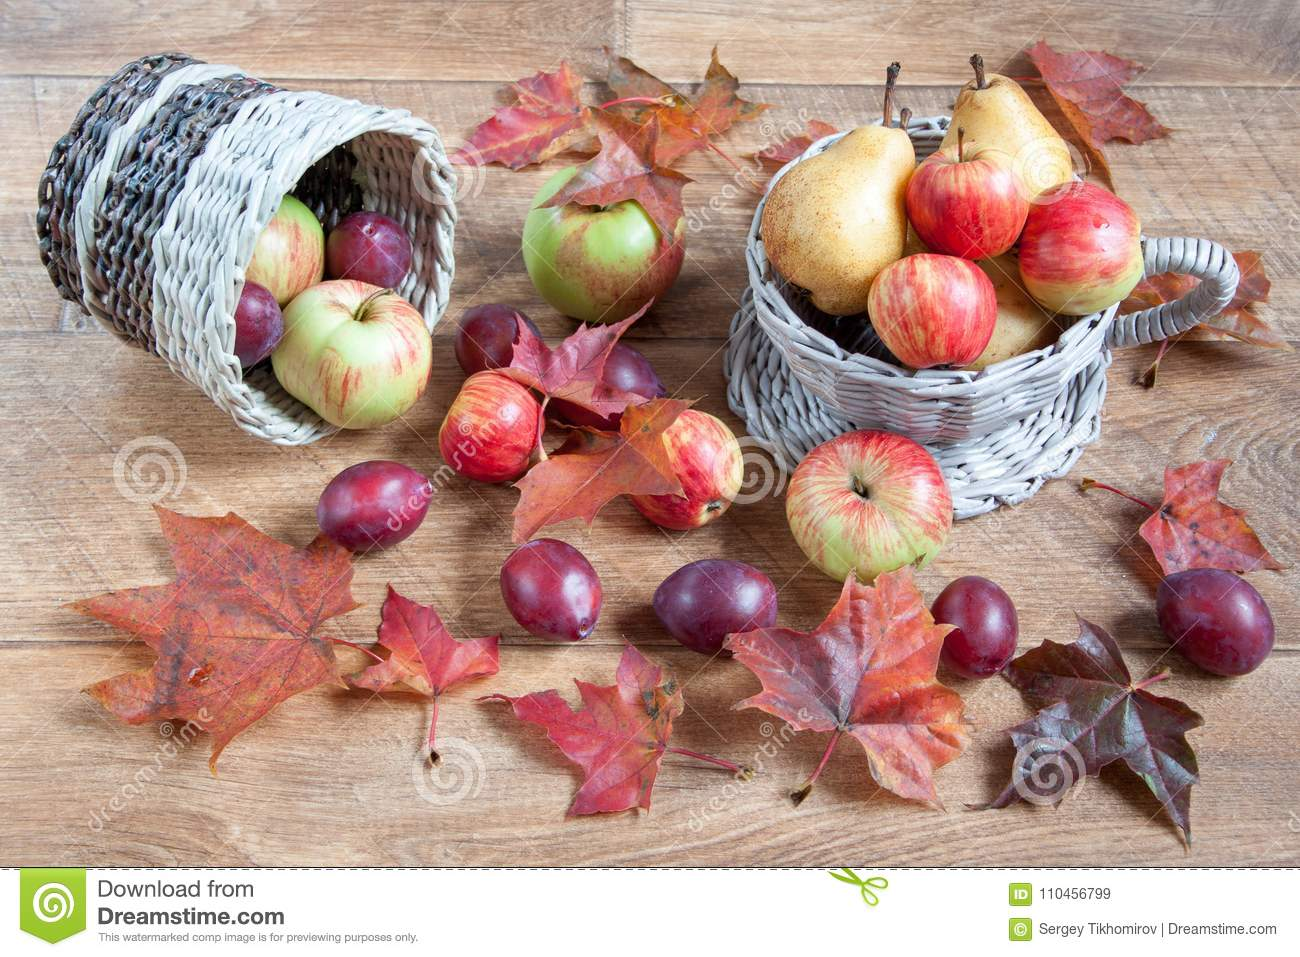 Maple Leafs Apples Pears And Other Gifts Of Nature Autumn Still Life Stock Image Image Of Green Background 110456799